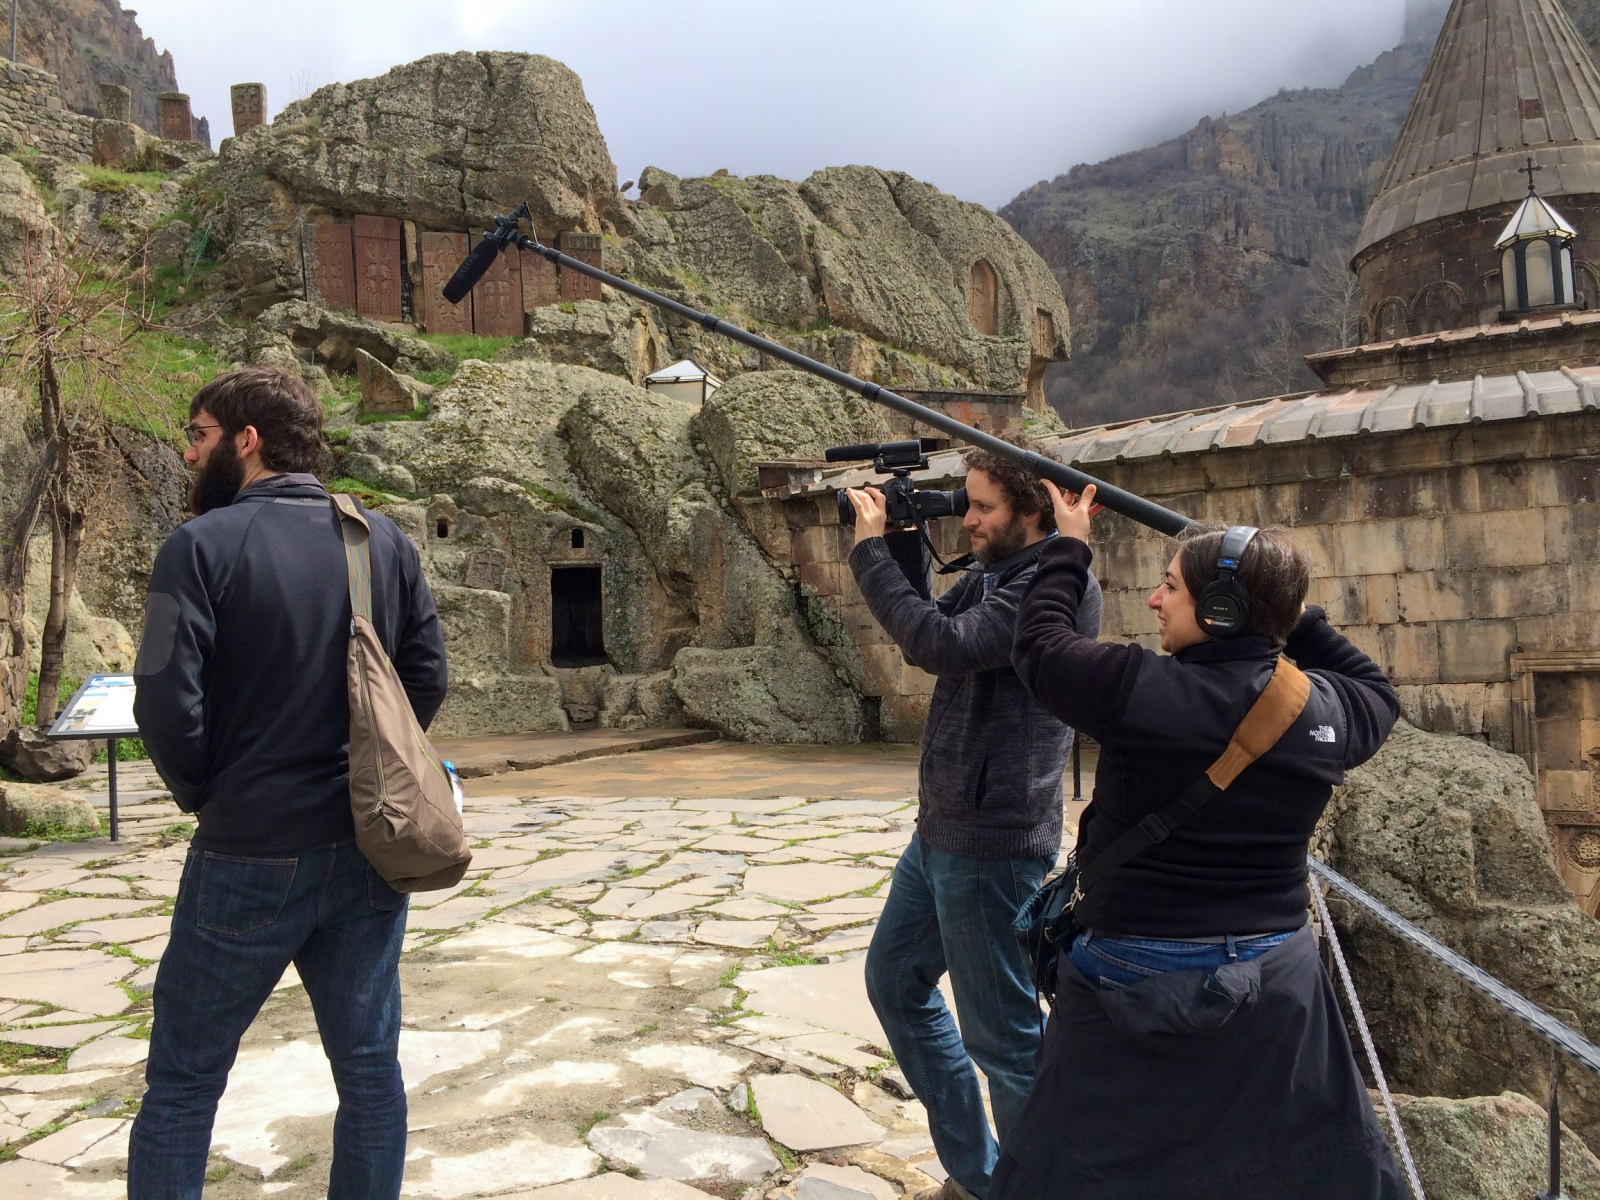 Crew Members Joseph Myers and Stephanie Ayanian film in Armenia with John Sweers. (Photo courtesy of Stephanie Ayanian)